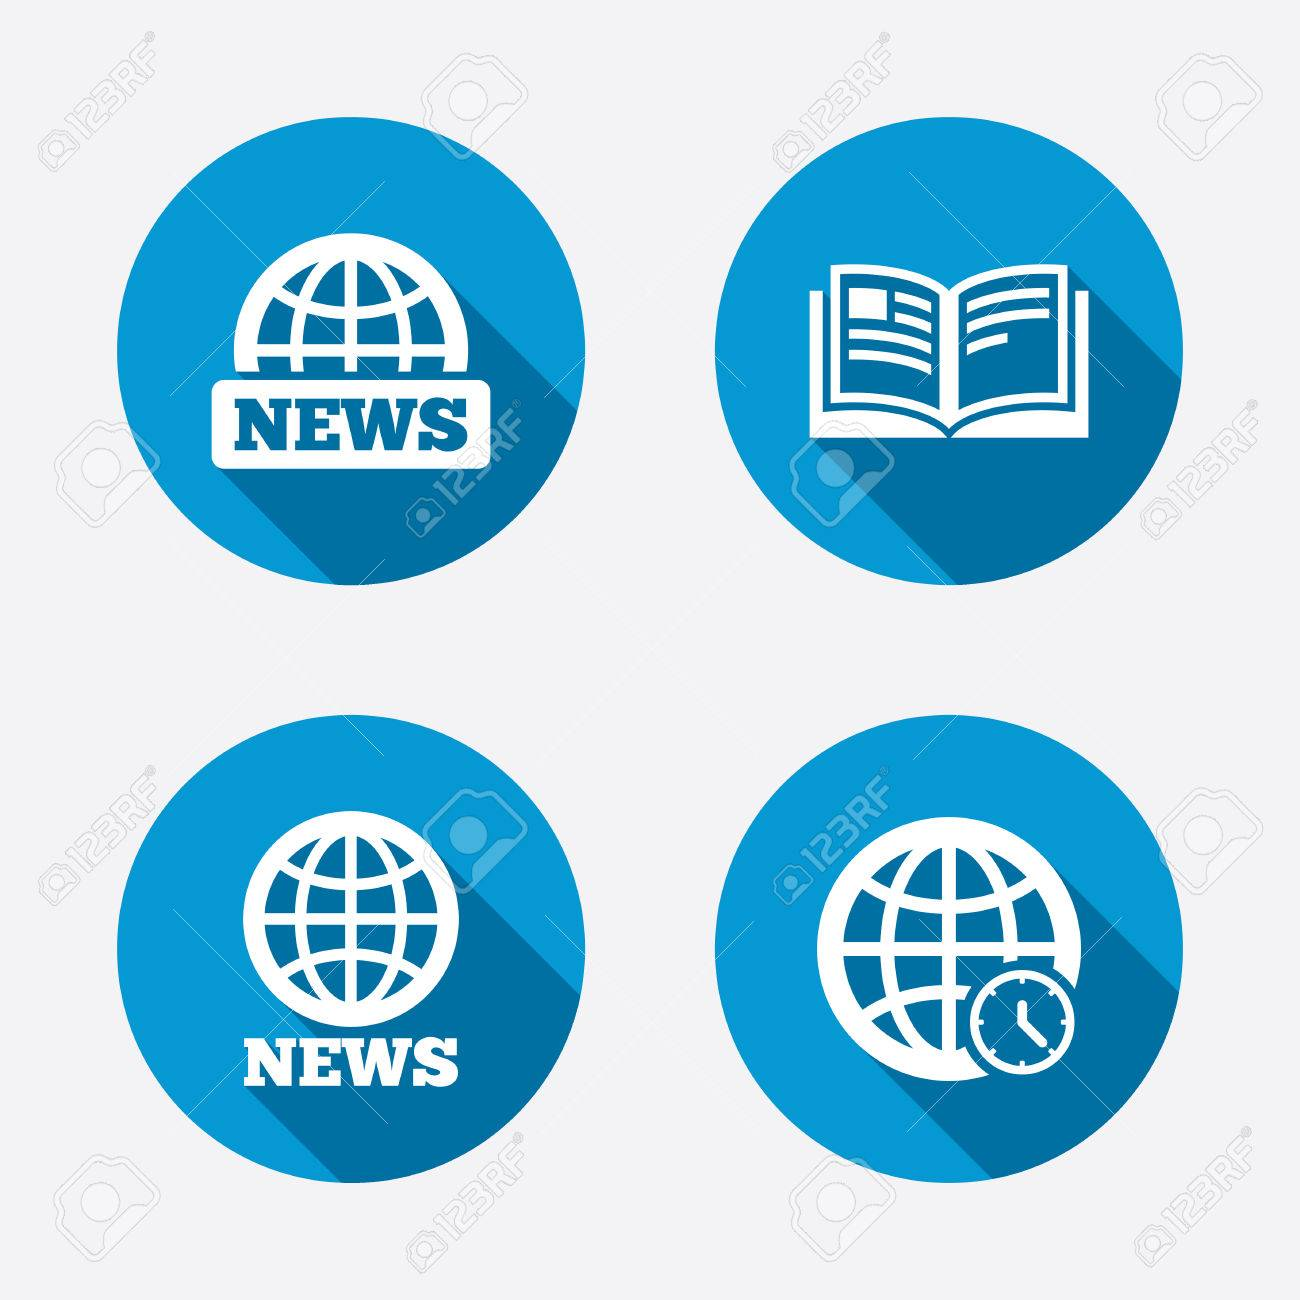 news icons world globe symbols open book sign education world globe symbols open book sign education literature circle concept